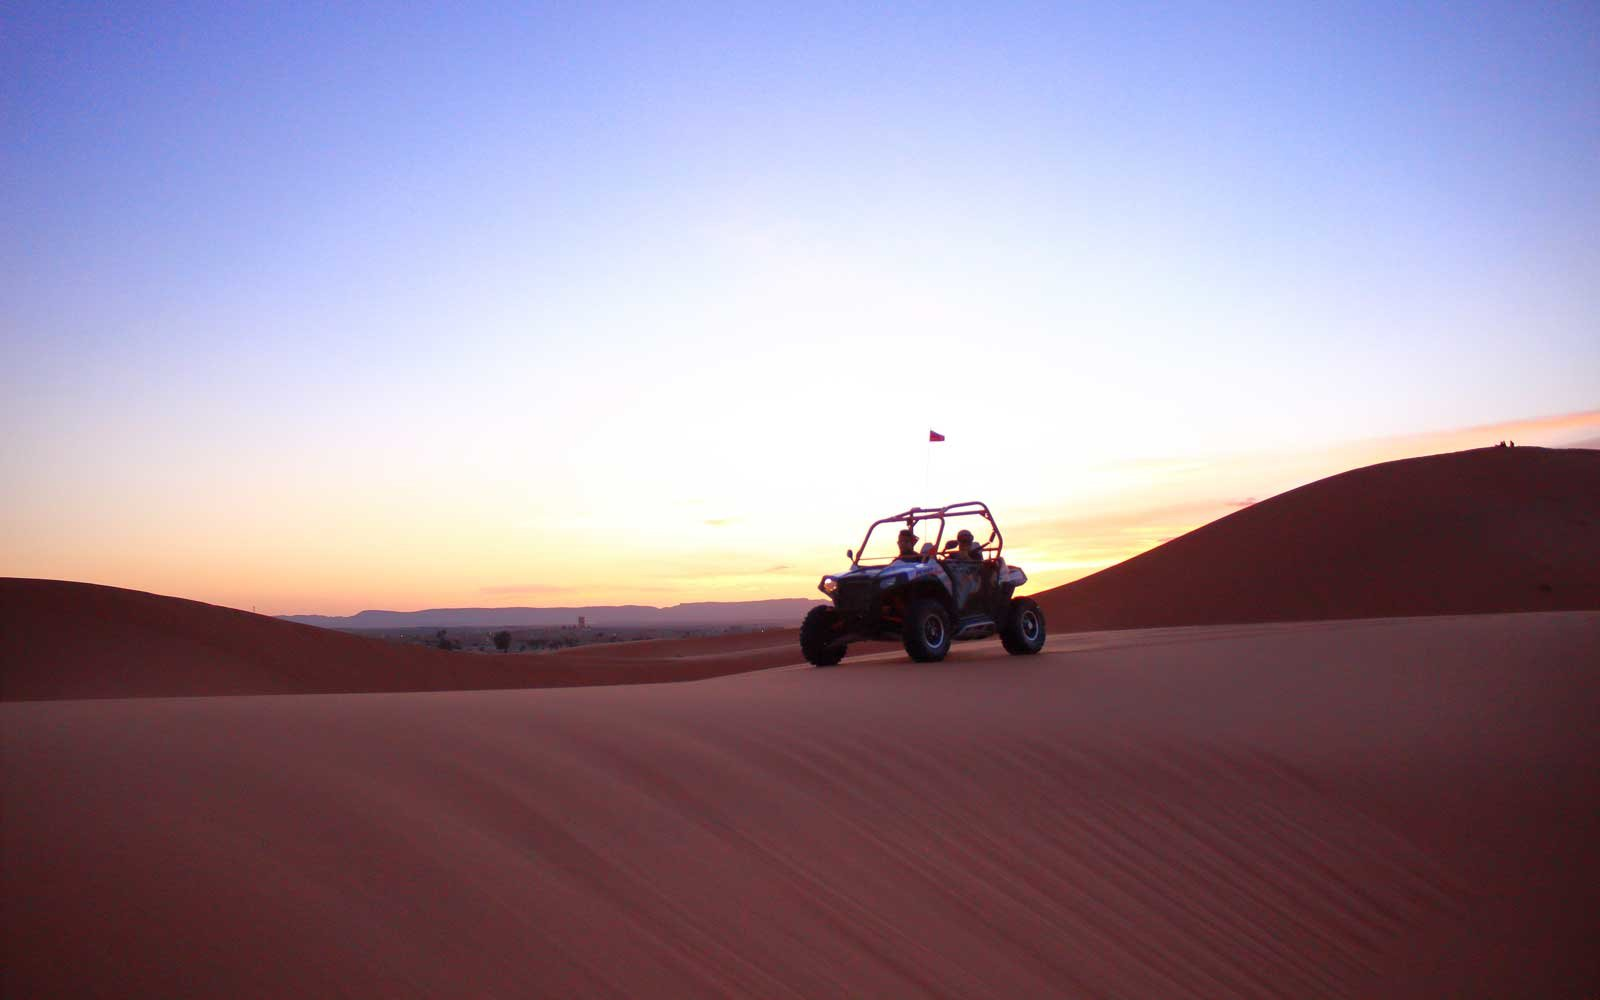 Go dune buggying in the Sahara